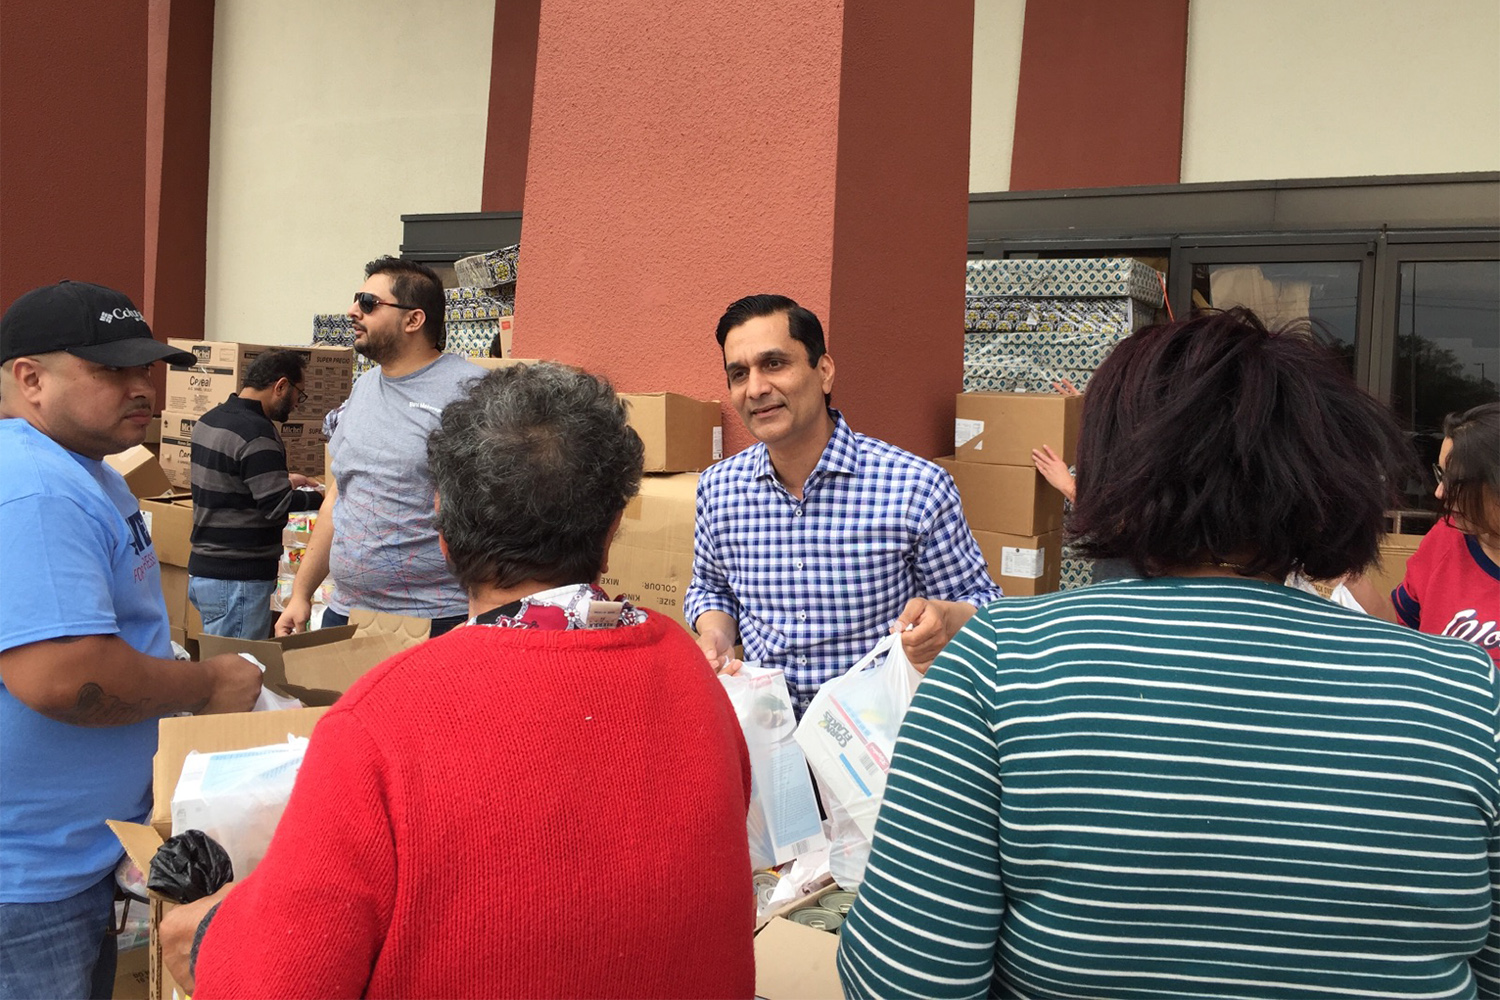 Health care executive and congressional candidate Tahir Javed hands out food in Pasadena on Saturday, March 3, 2018.